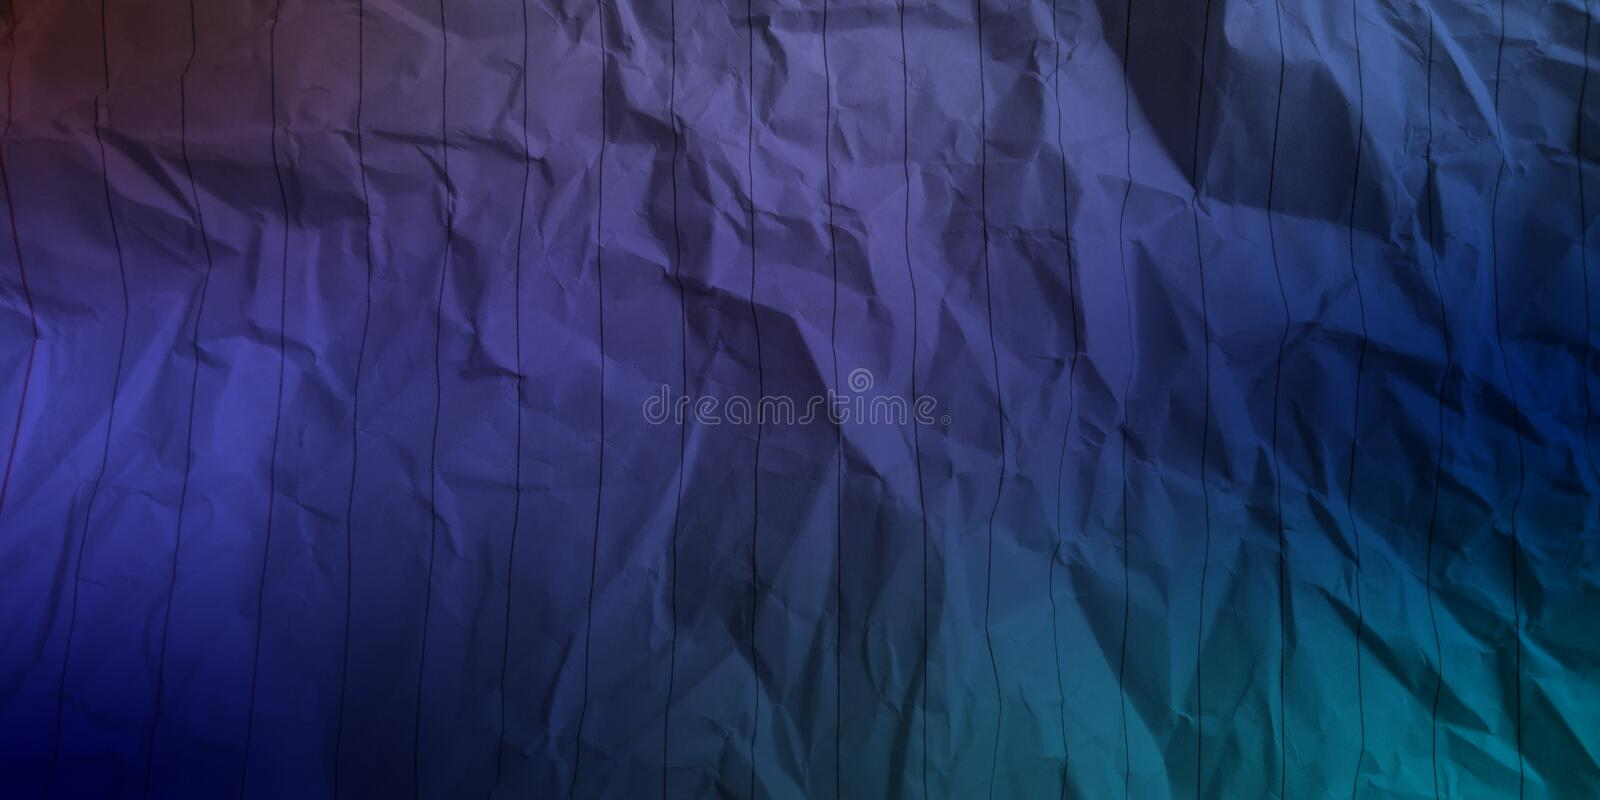 Abstract crumpled paper sky blue dark brown electric blue pastel blue navy blue deep blue color multi colors effects background. stock image